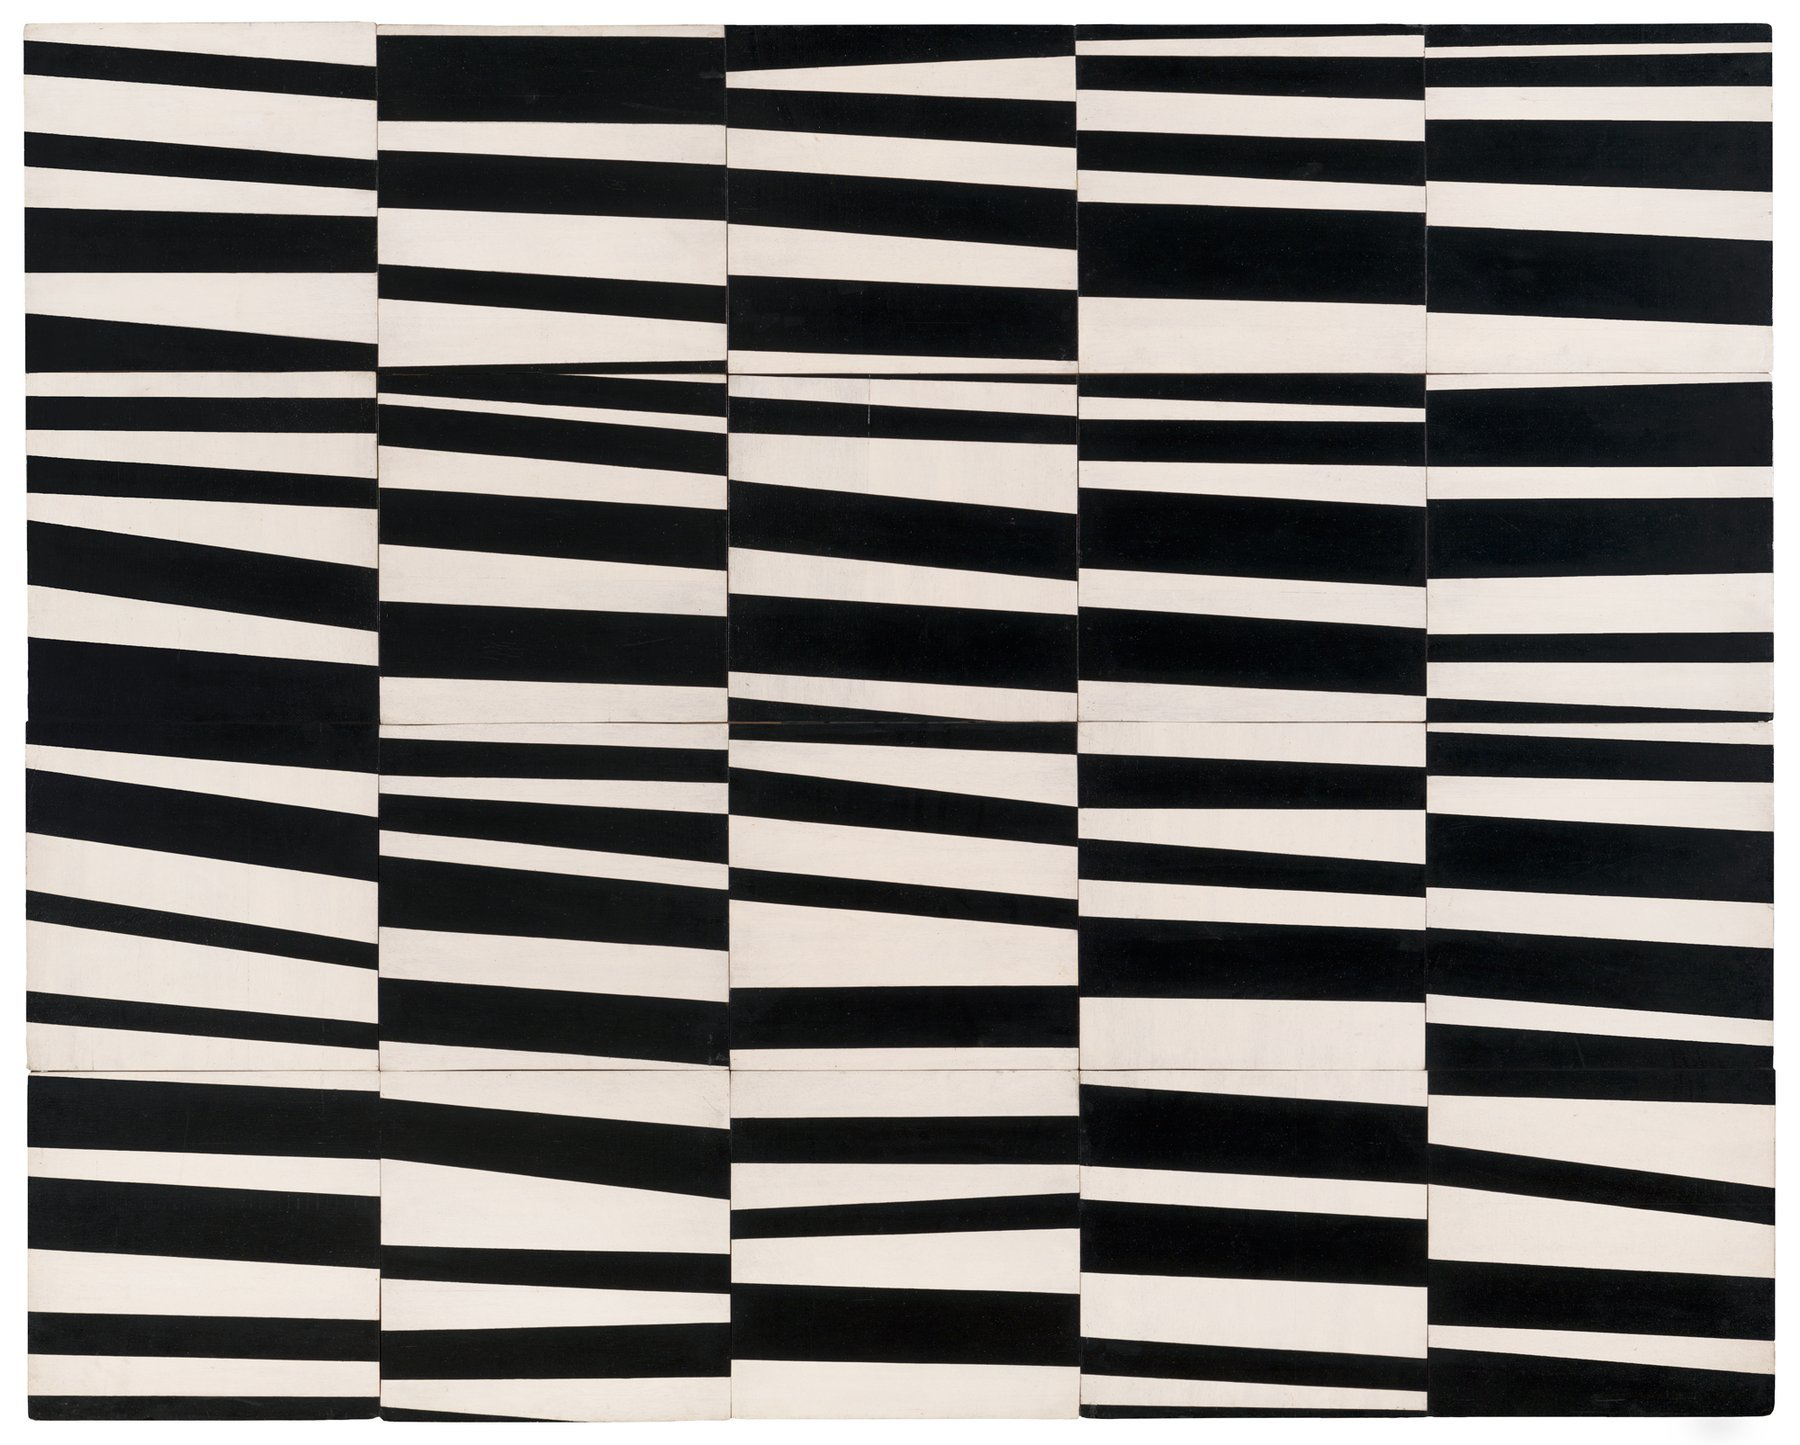 Approaching American Abstraction: The Fisher Collection